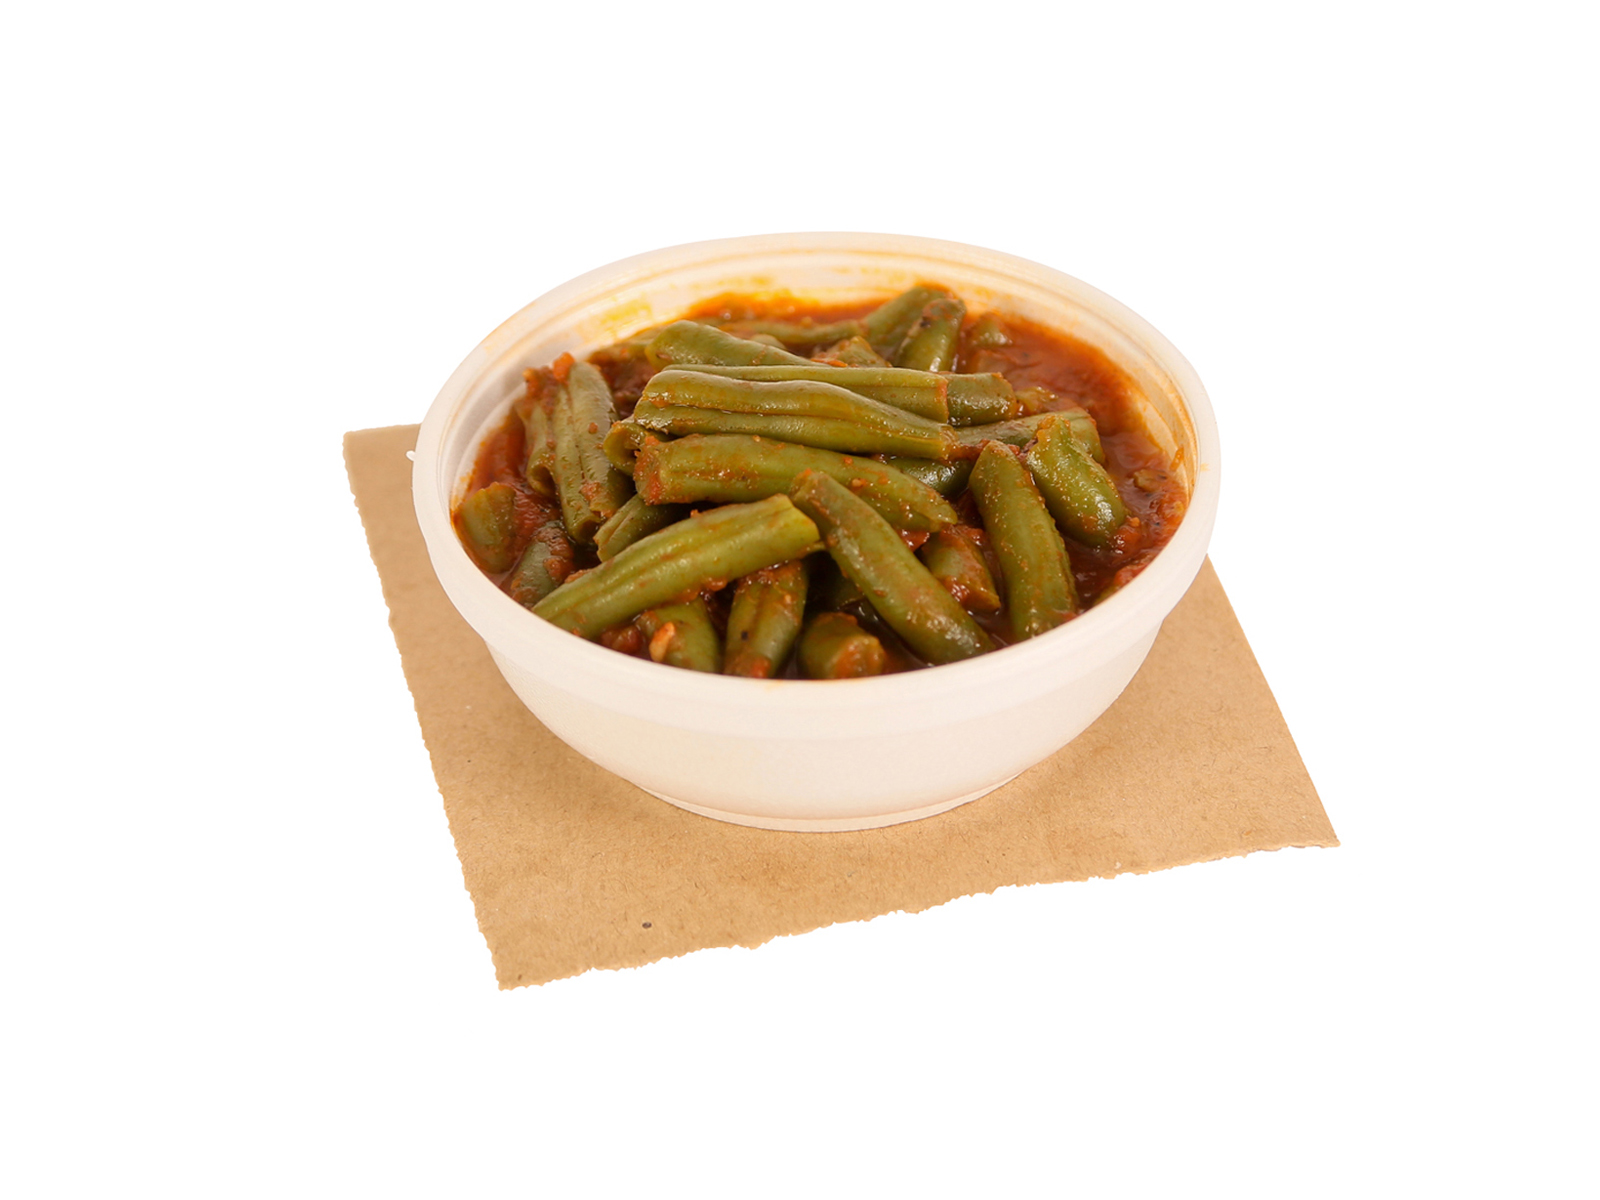 Portion of green beans